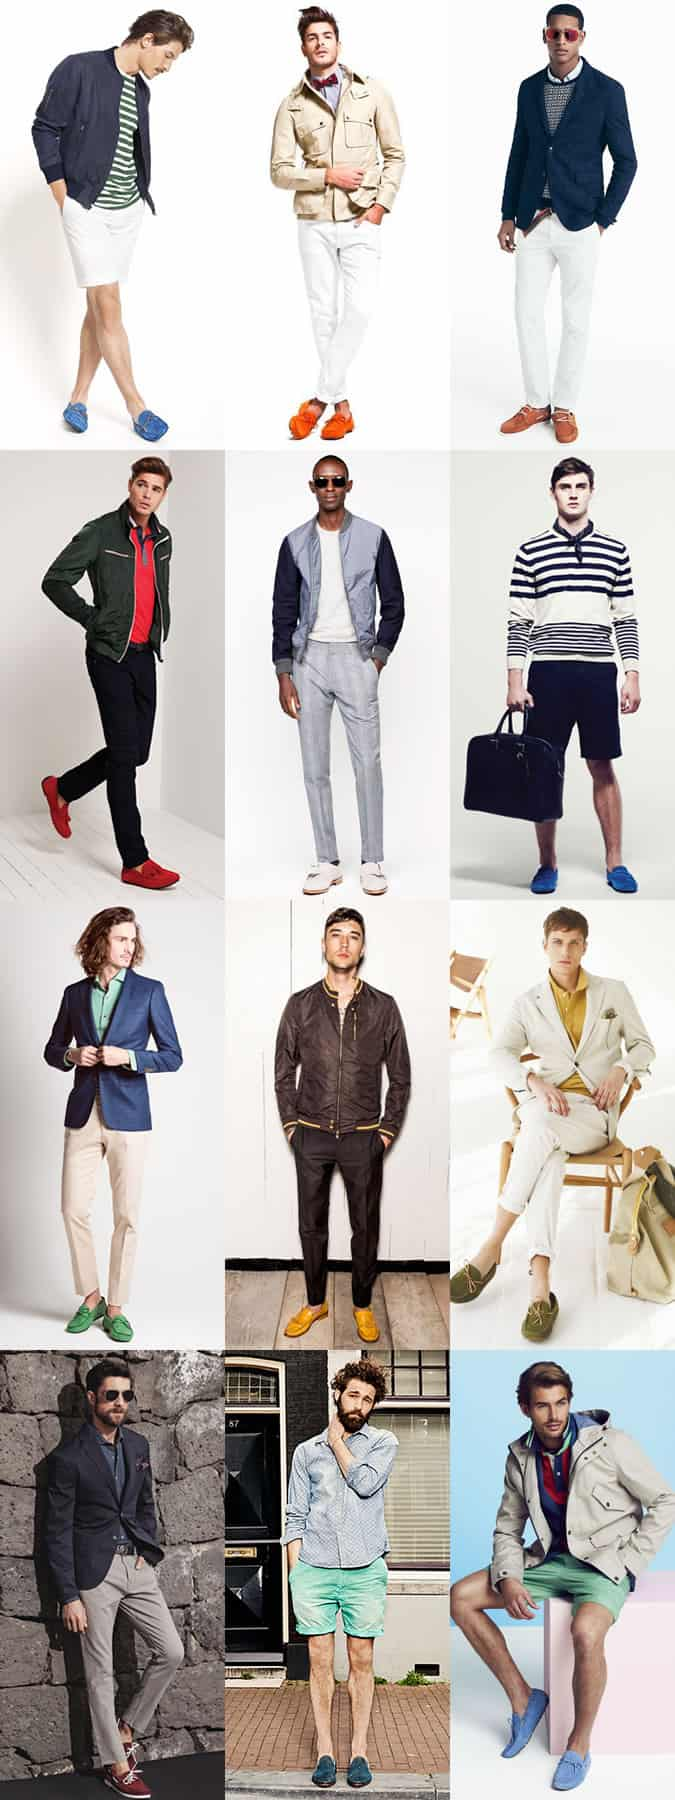 Men's Colour-Pop Slip-On Shoes and Loafers Outfit Inspiration Lookbook